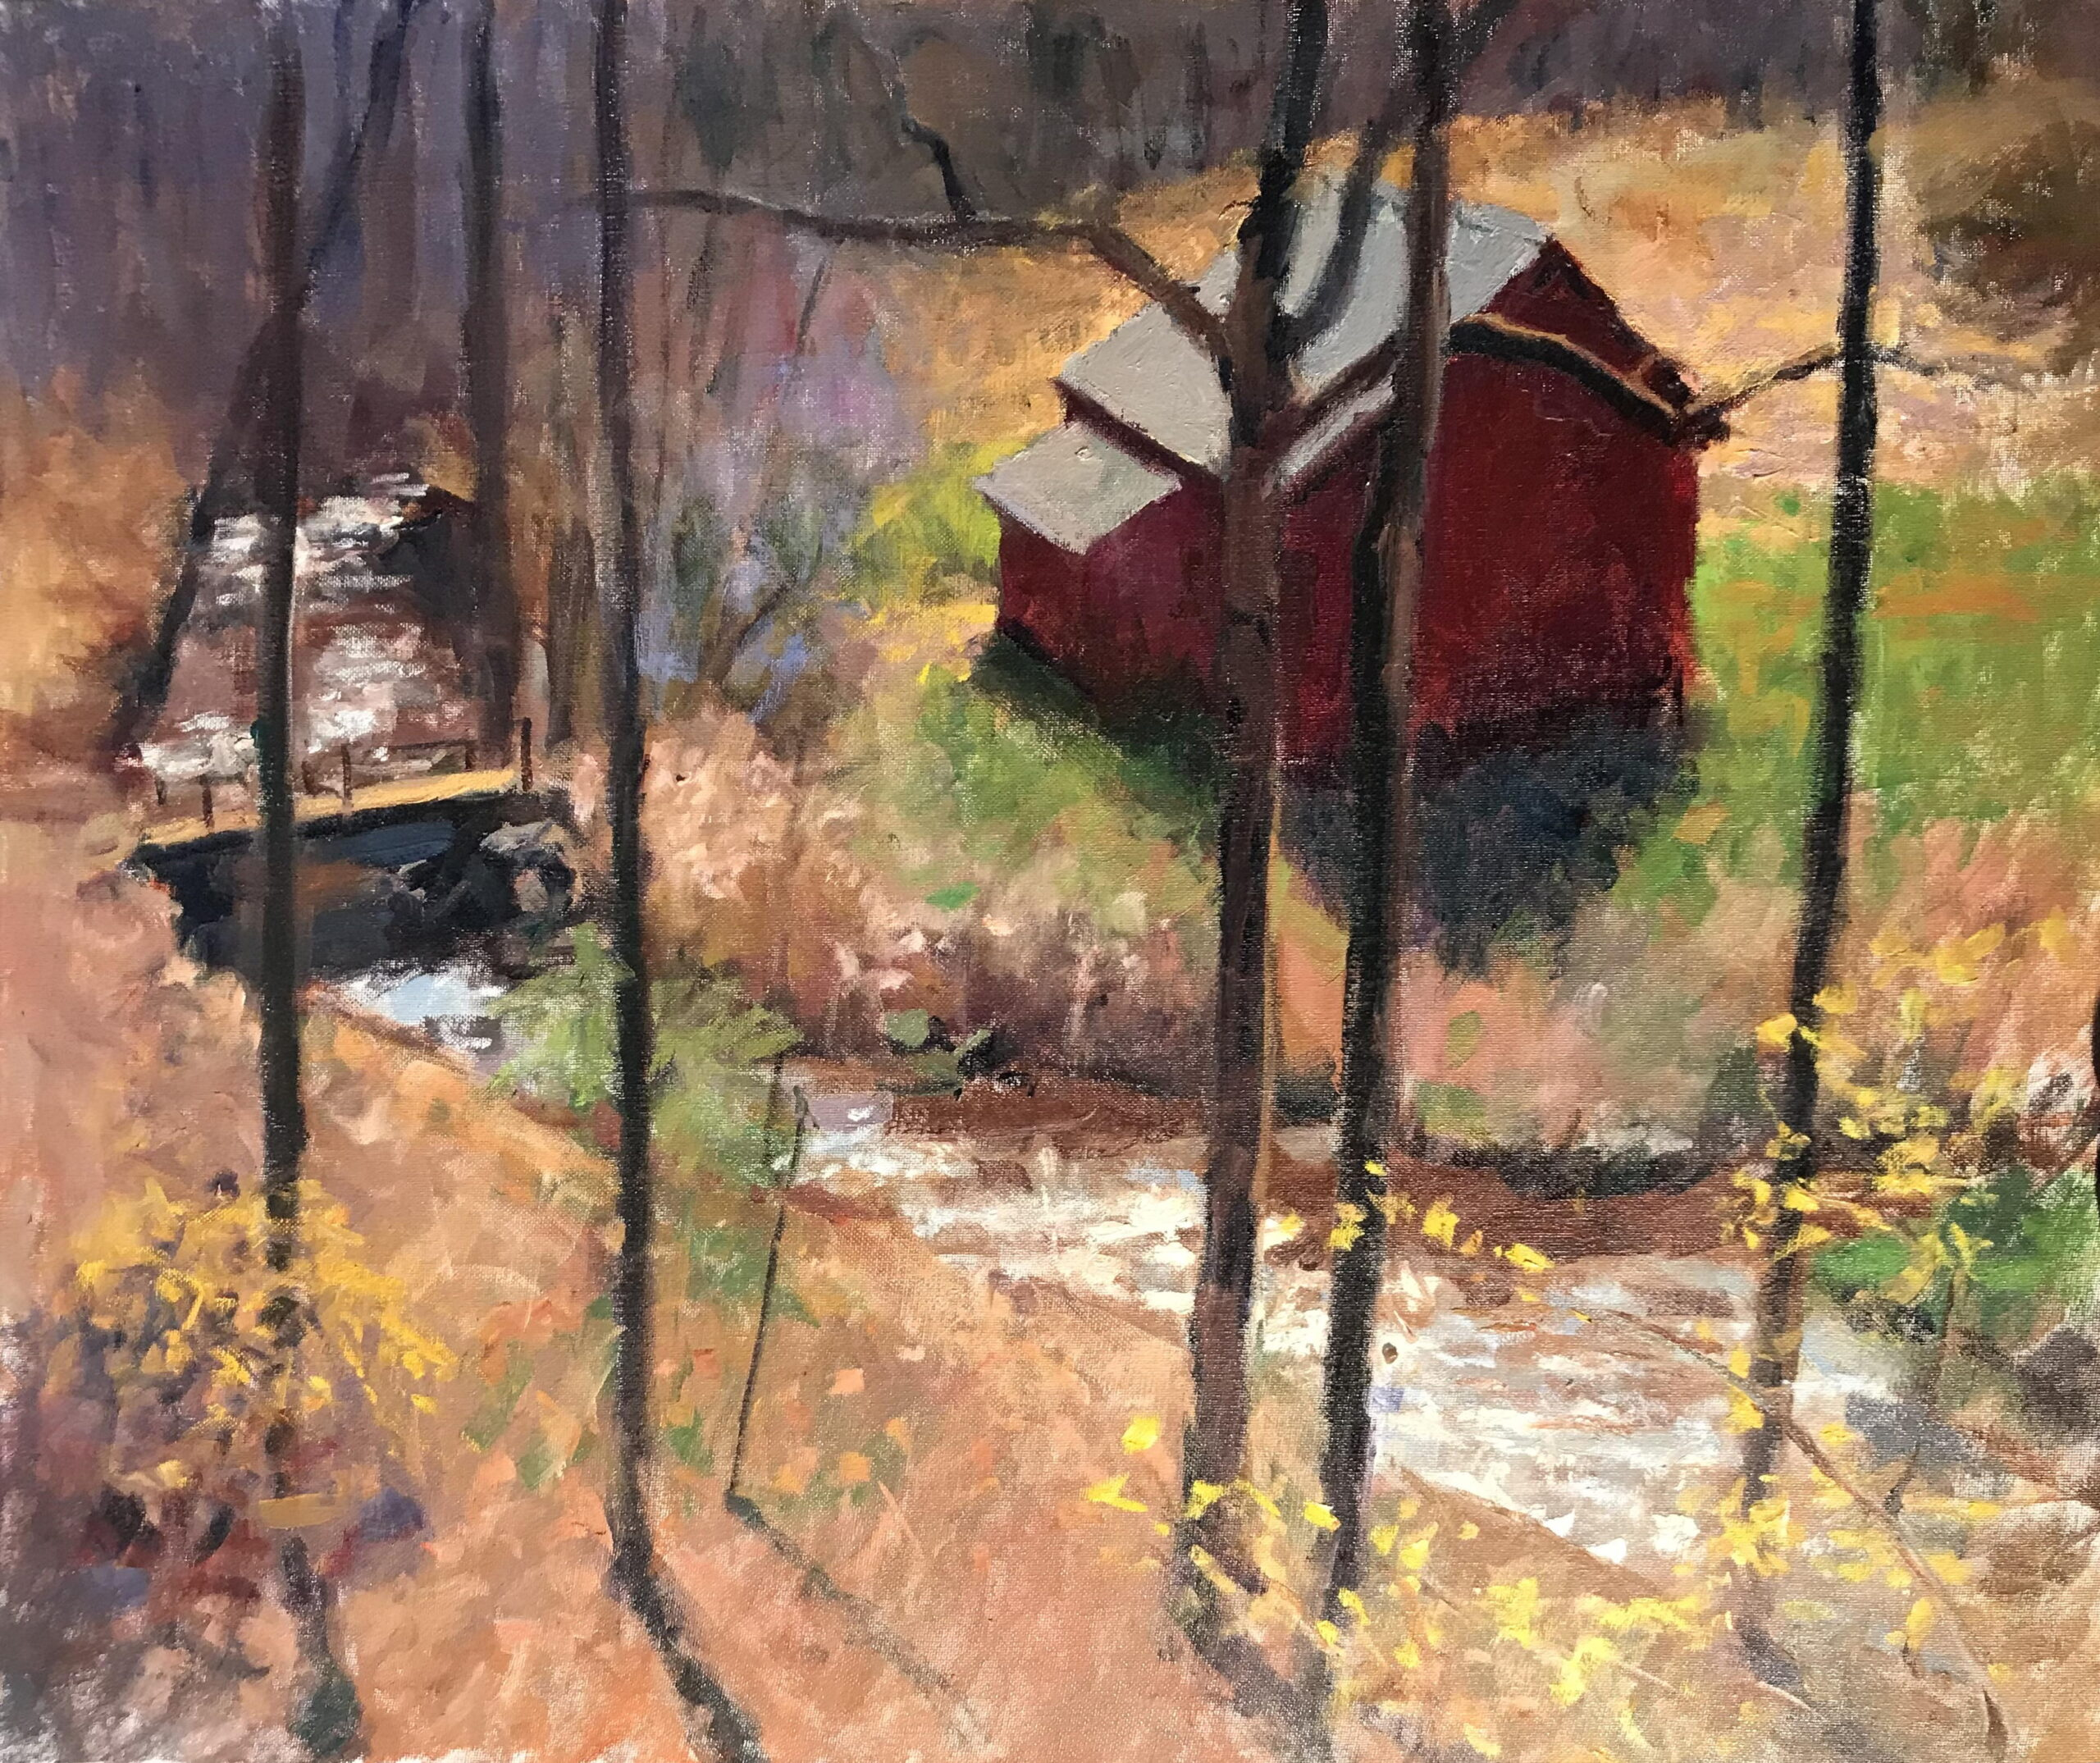 Barn in April, Oil on Canvas, 24 x 30 Inches, by Susan Grisell, $1500